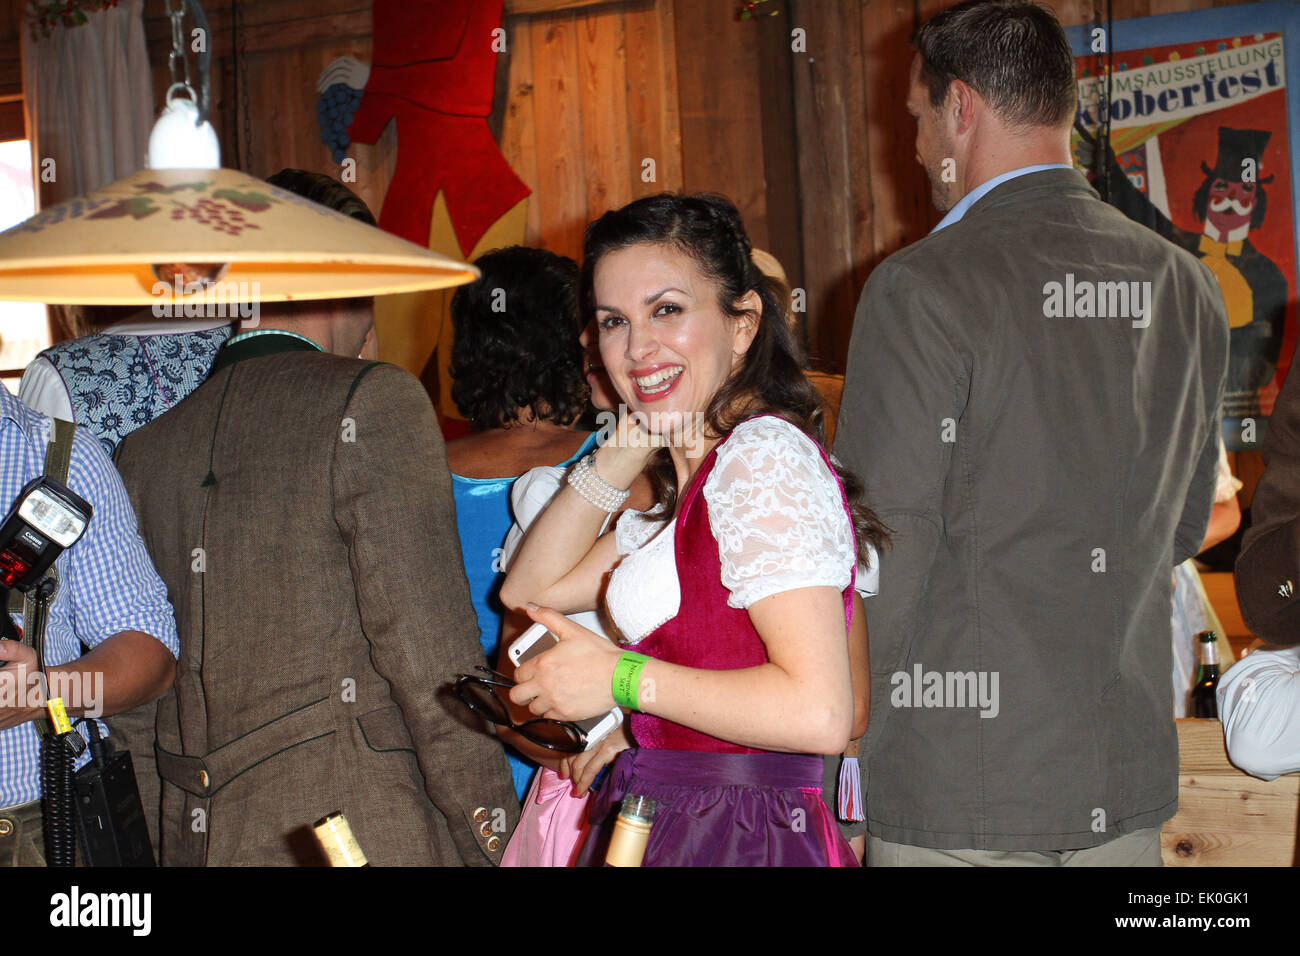 Sauerland boxing promoter's party at Weinzelt tent during the 2014 Oktoberfest (Wiesn) Featuring: Viktoria Lauterbach - Stock Image